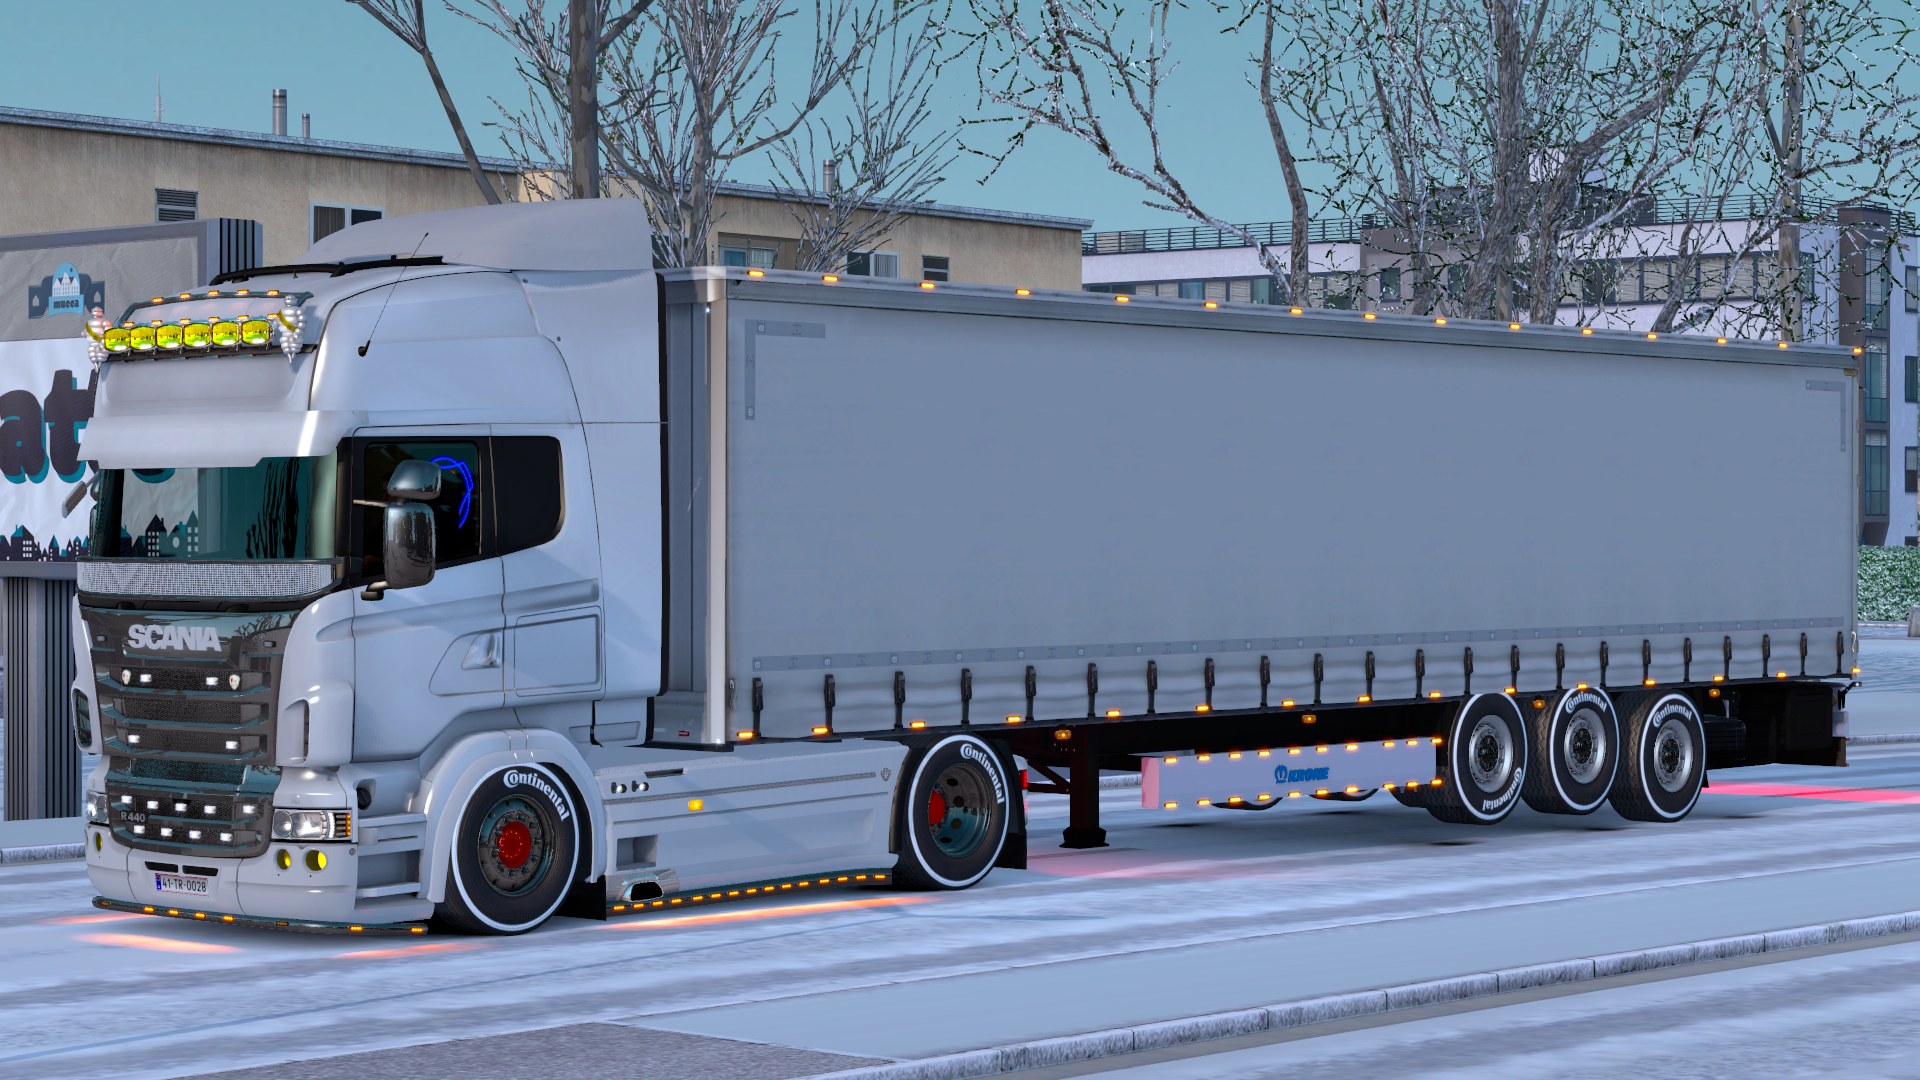 ets2_20190106_021509_00.png